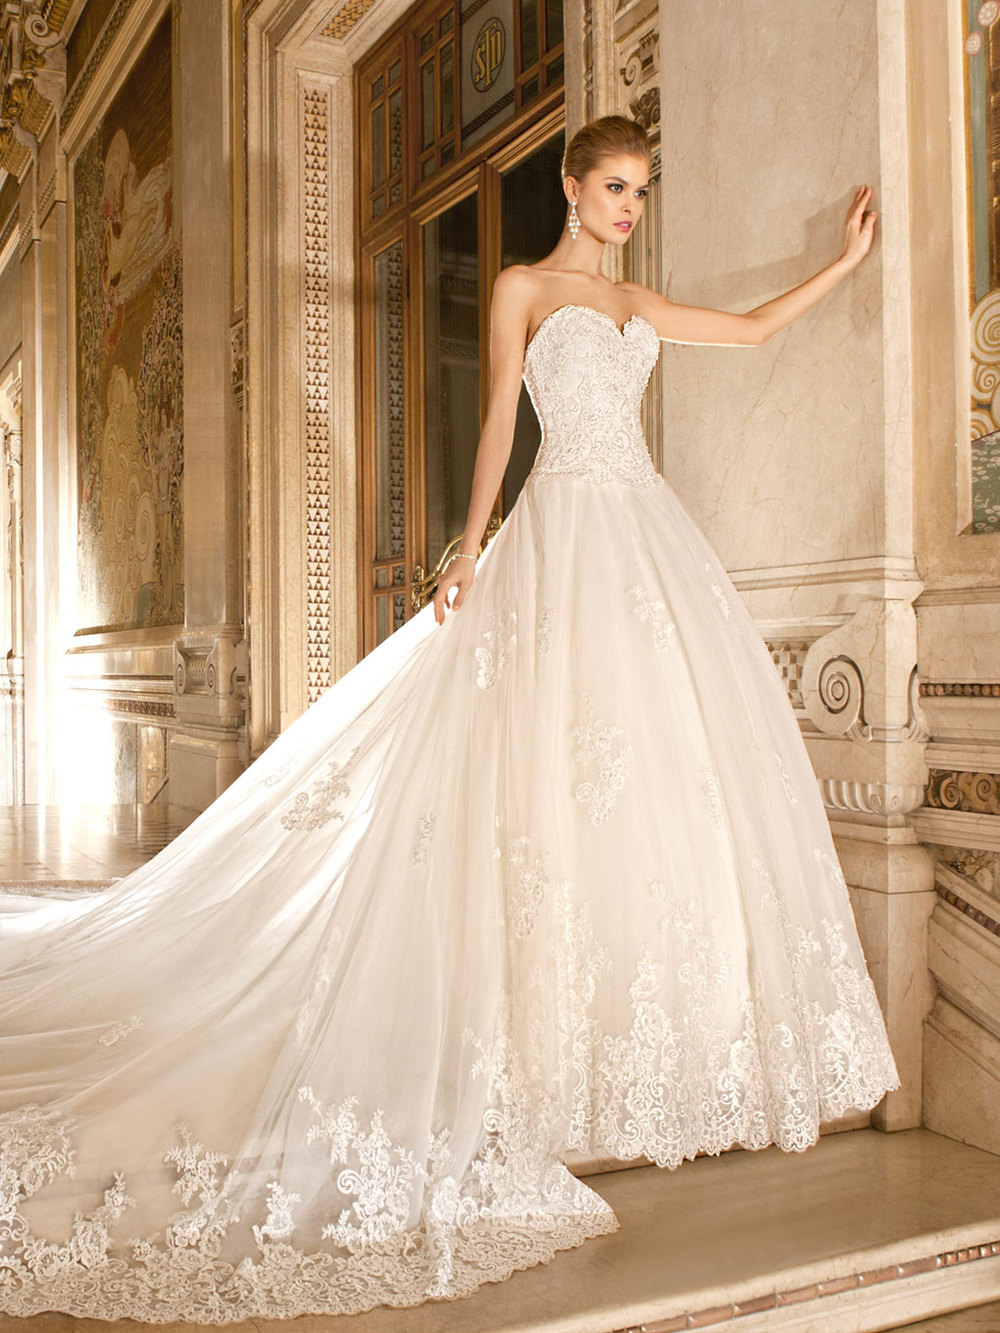 Royal wedding dresses cocktail dresses 2016 for Wedding dress long train